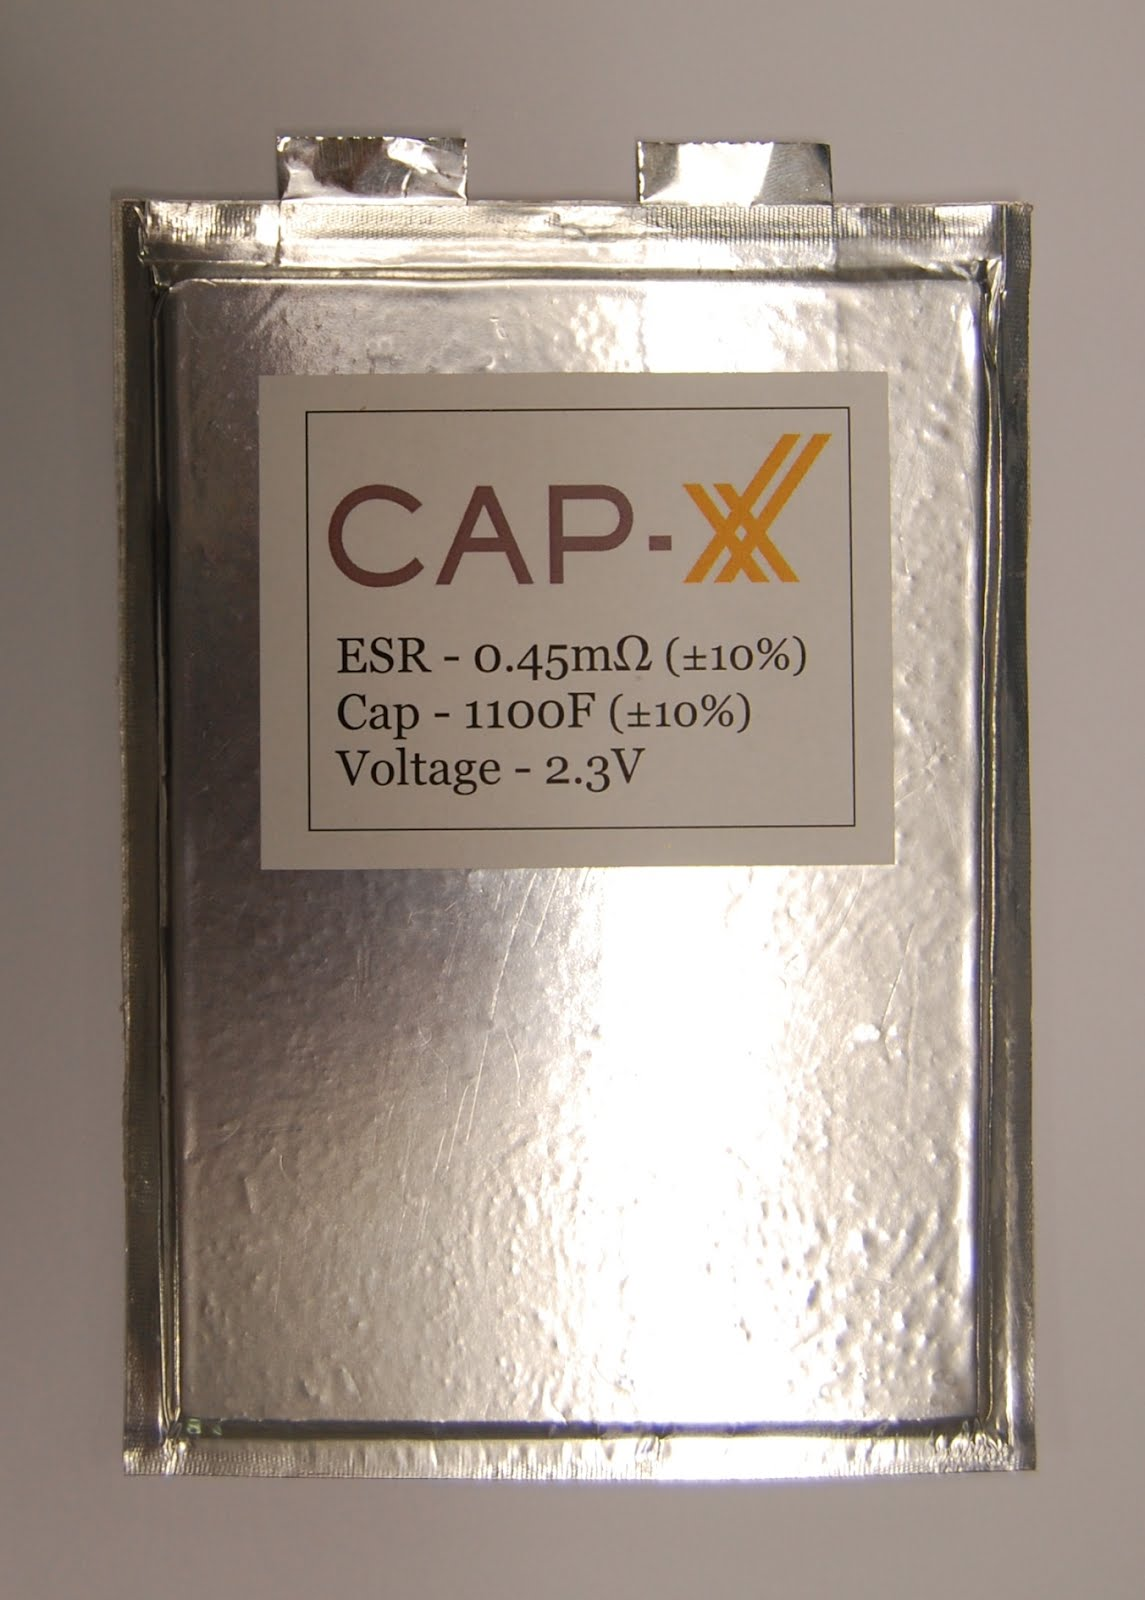 CAP-XX Introduces Prismatic Supercapacitors For Automotive